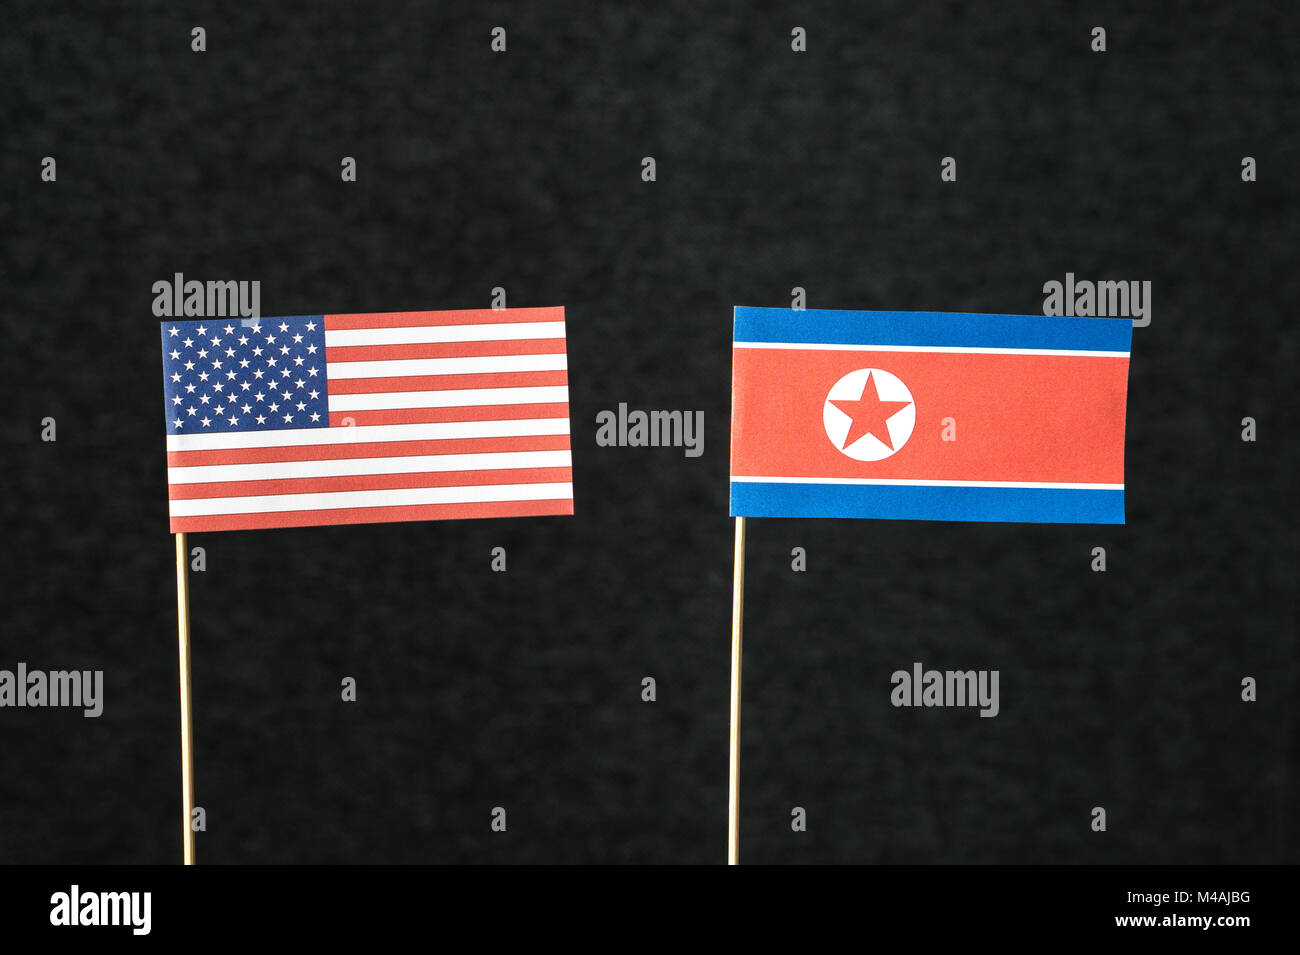 The flag of United States of America (USA) and North Korea made from paper on wooden stick against dark background. - Stock Image